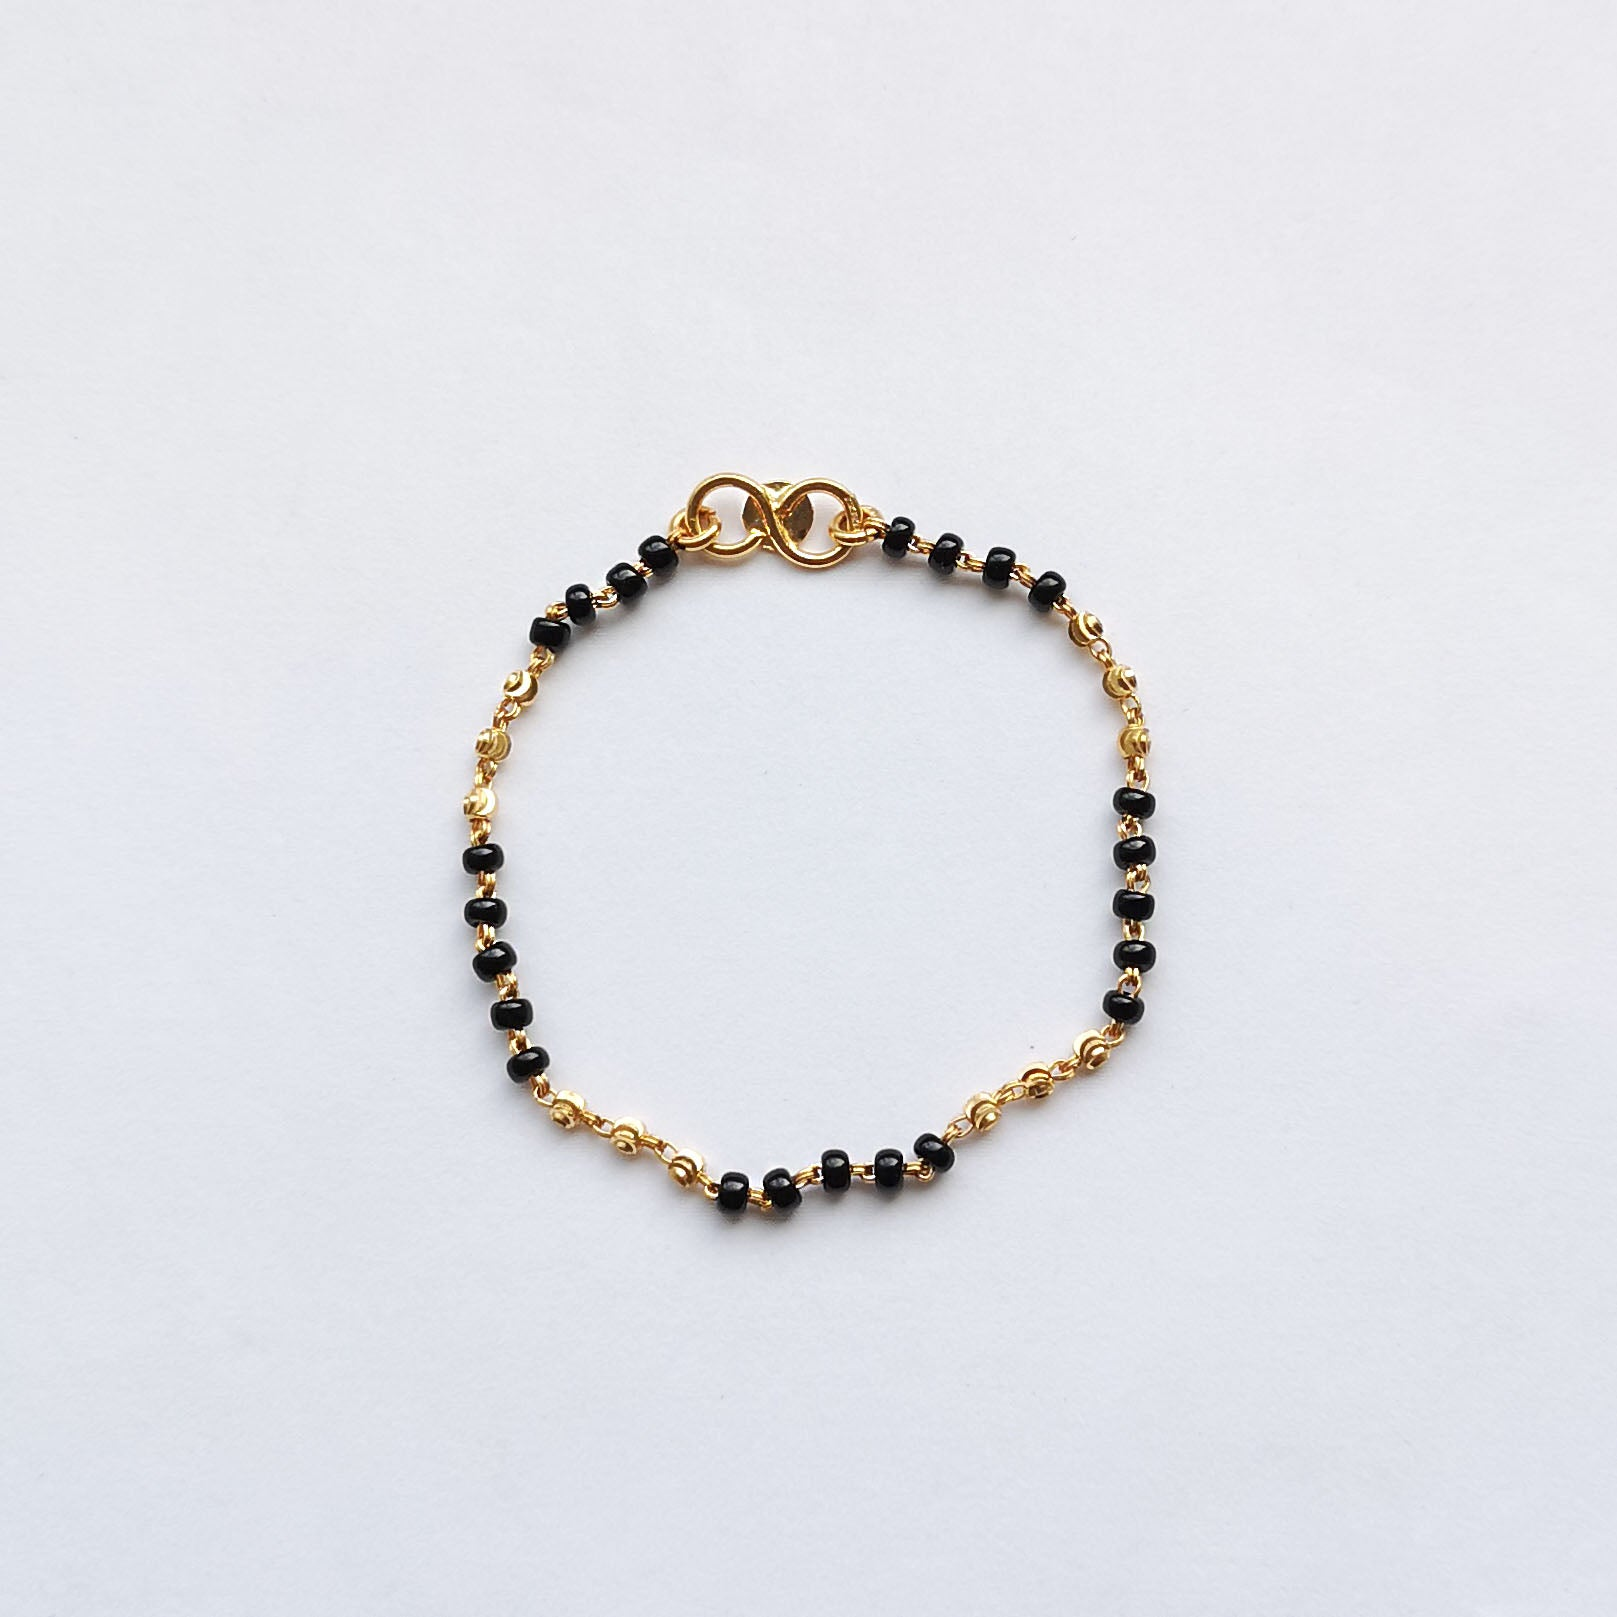 22ct Gold Children's Bracelets with Black Beads and Diamond Cut Design CBR-7908